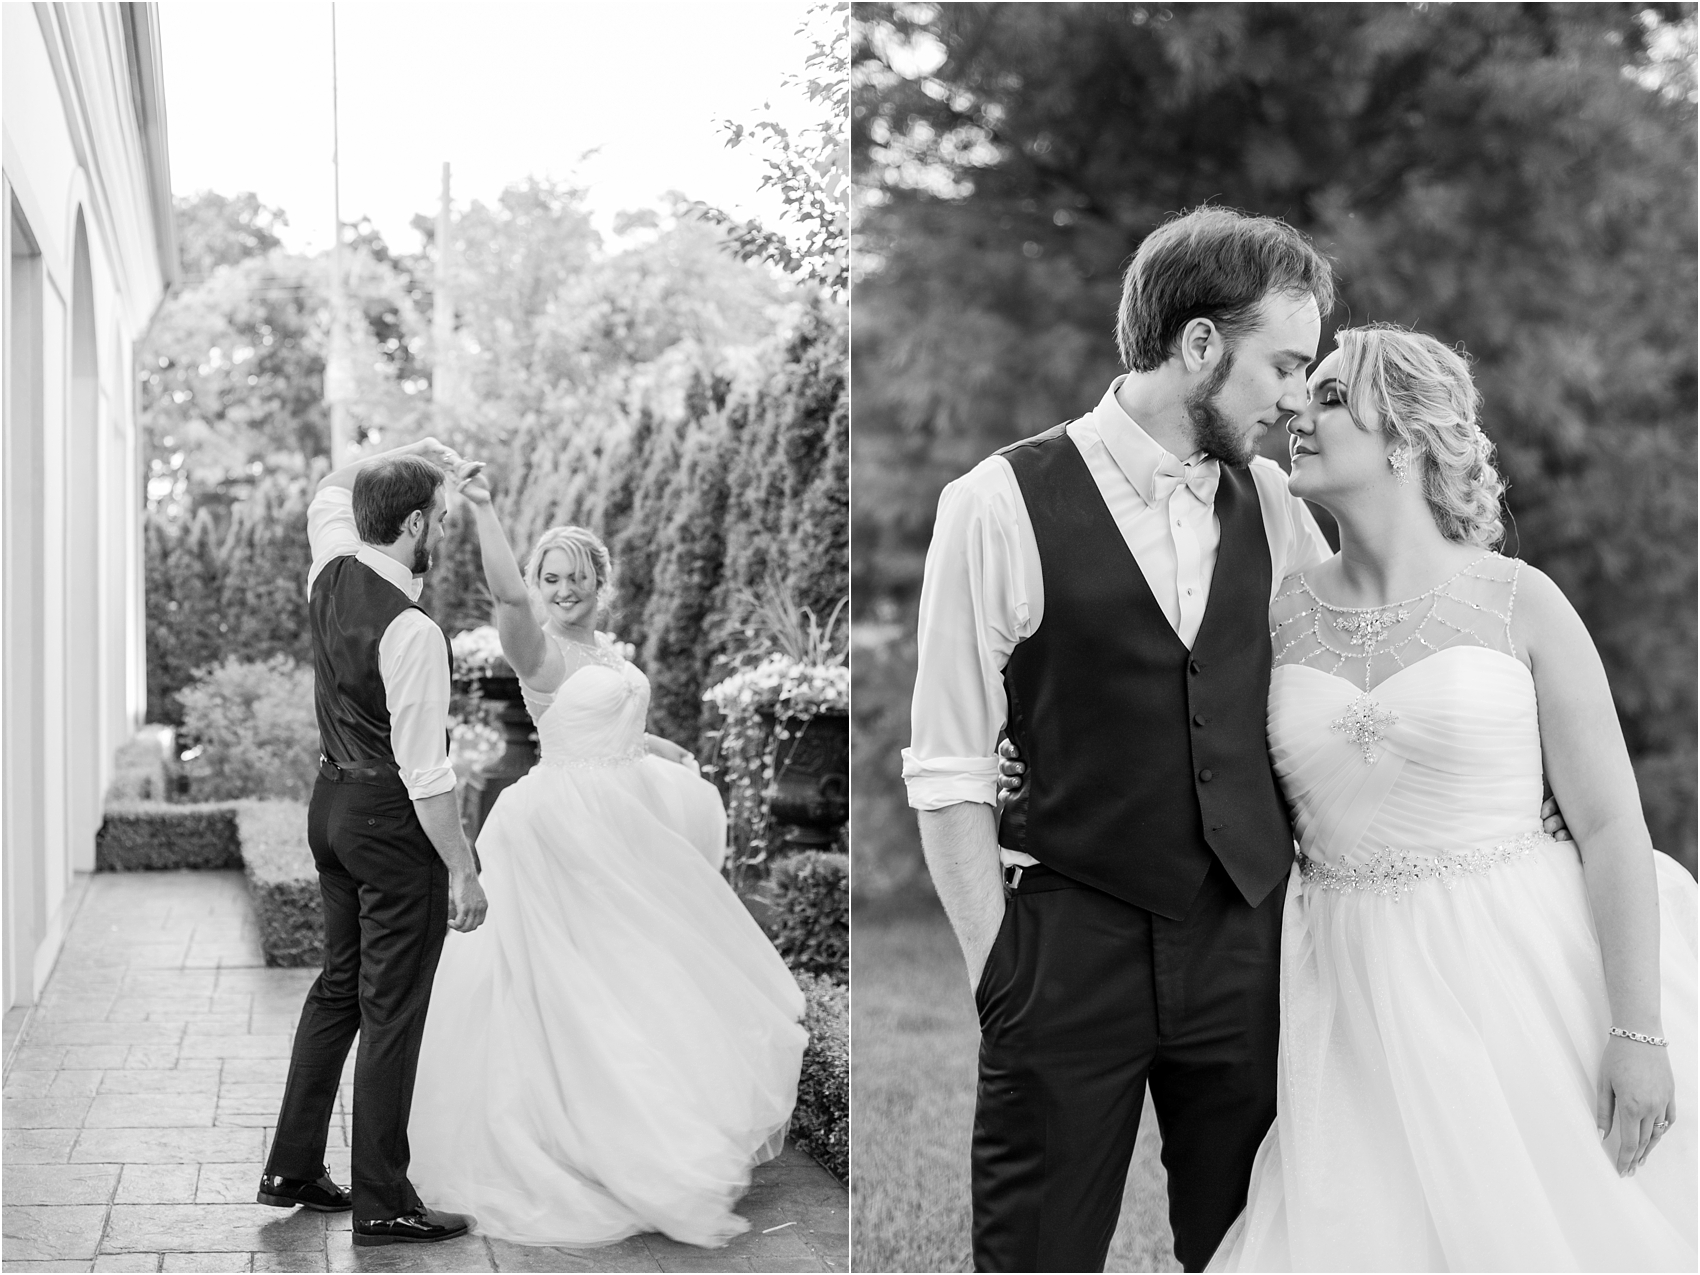 lord-of-the-rings-inspired-wedding-photos-at-crystal-gardens-in-howell-mi-by-courtney-carolyn-photography_0113.jpg